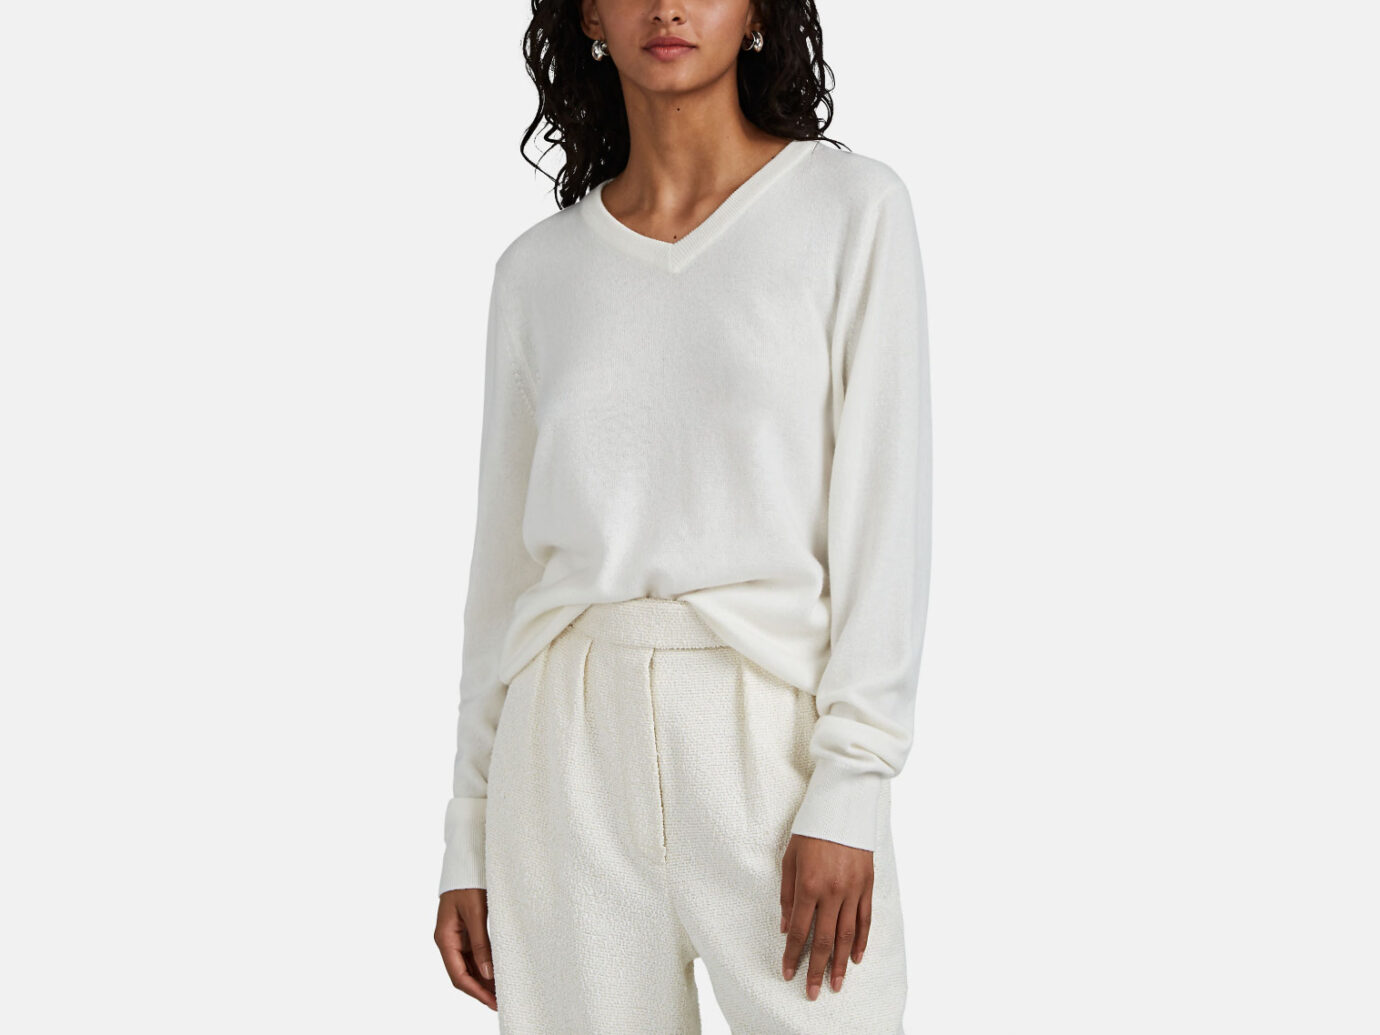 The Row Maley Cashmere Sweater